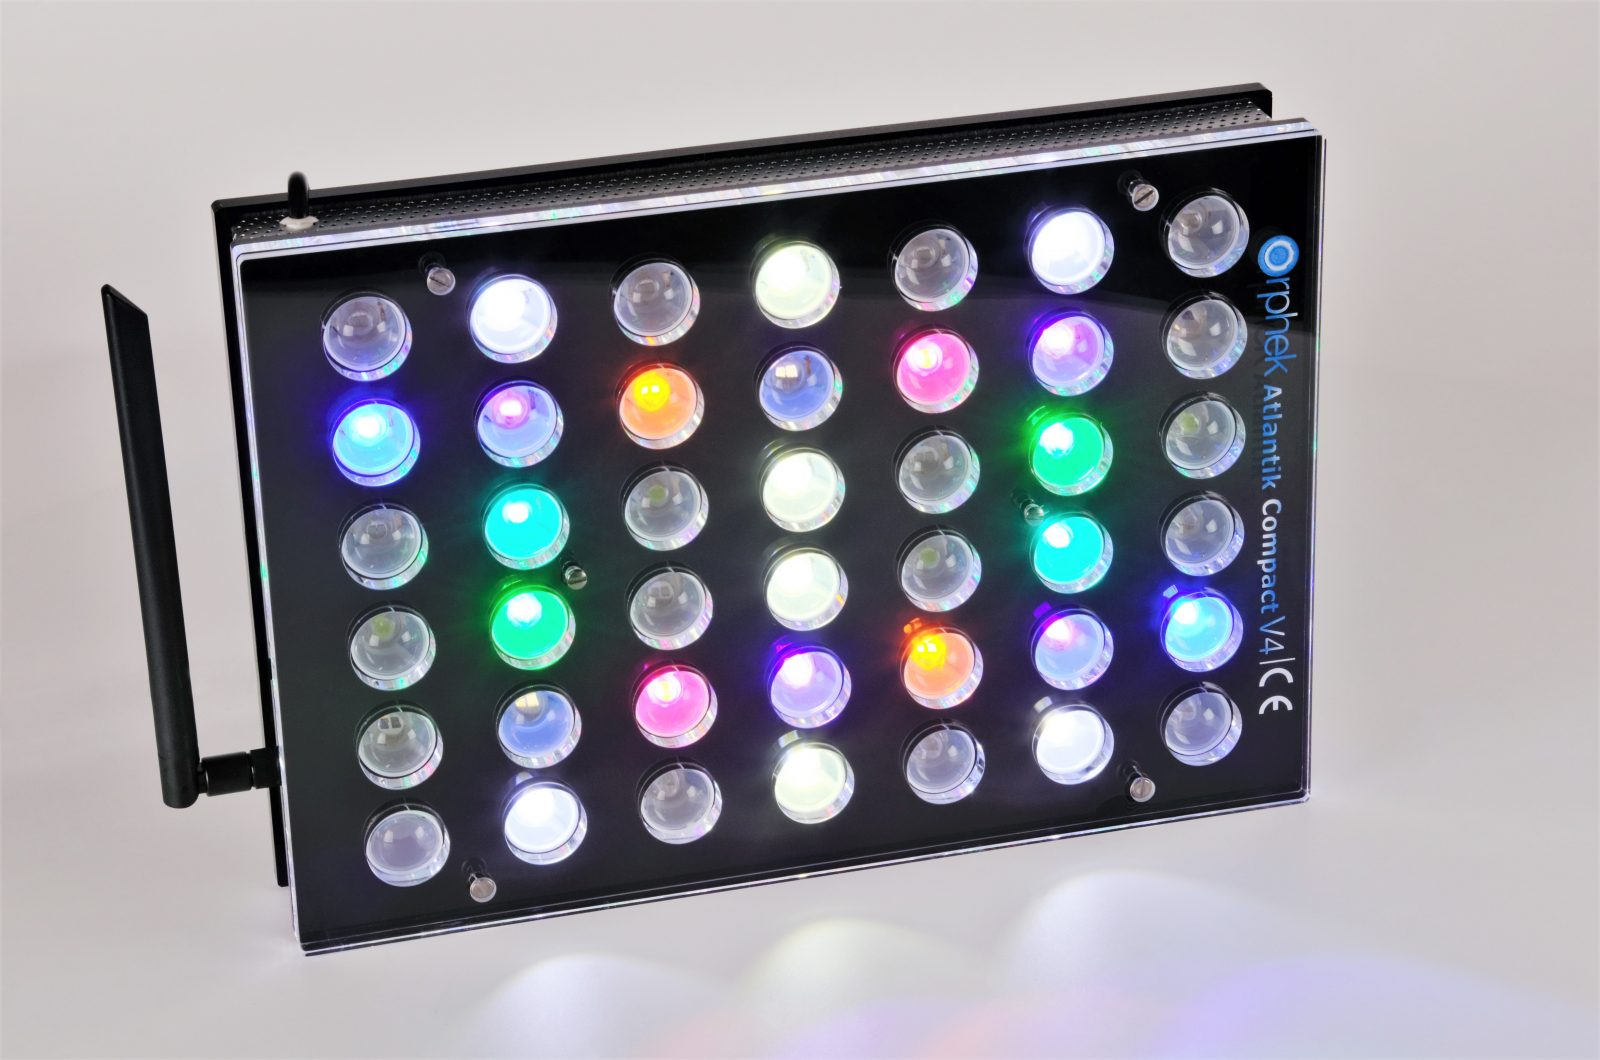 Orphek-Aquarium-LED-Beleuchtung-Atlantik -Compact-V4-light -on -channel 1 + 3 + 4